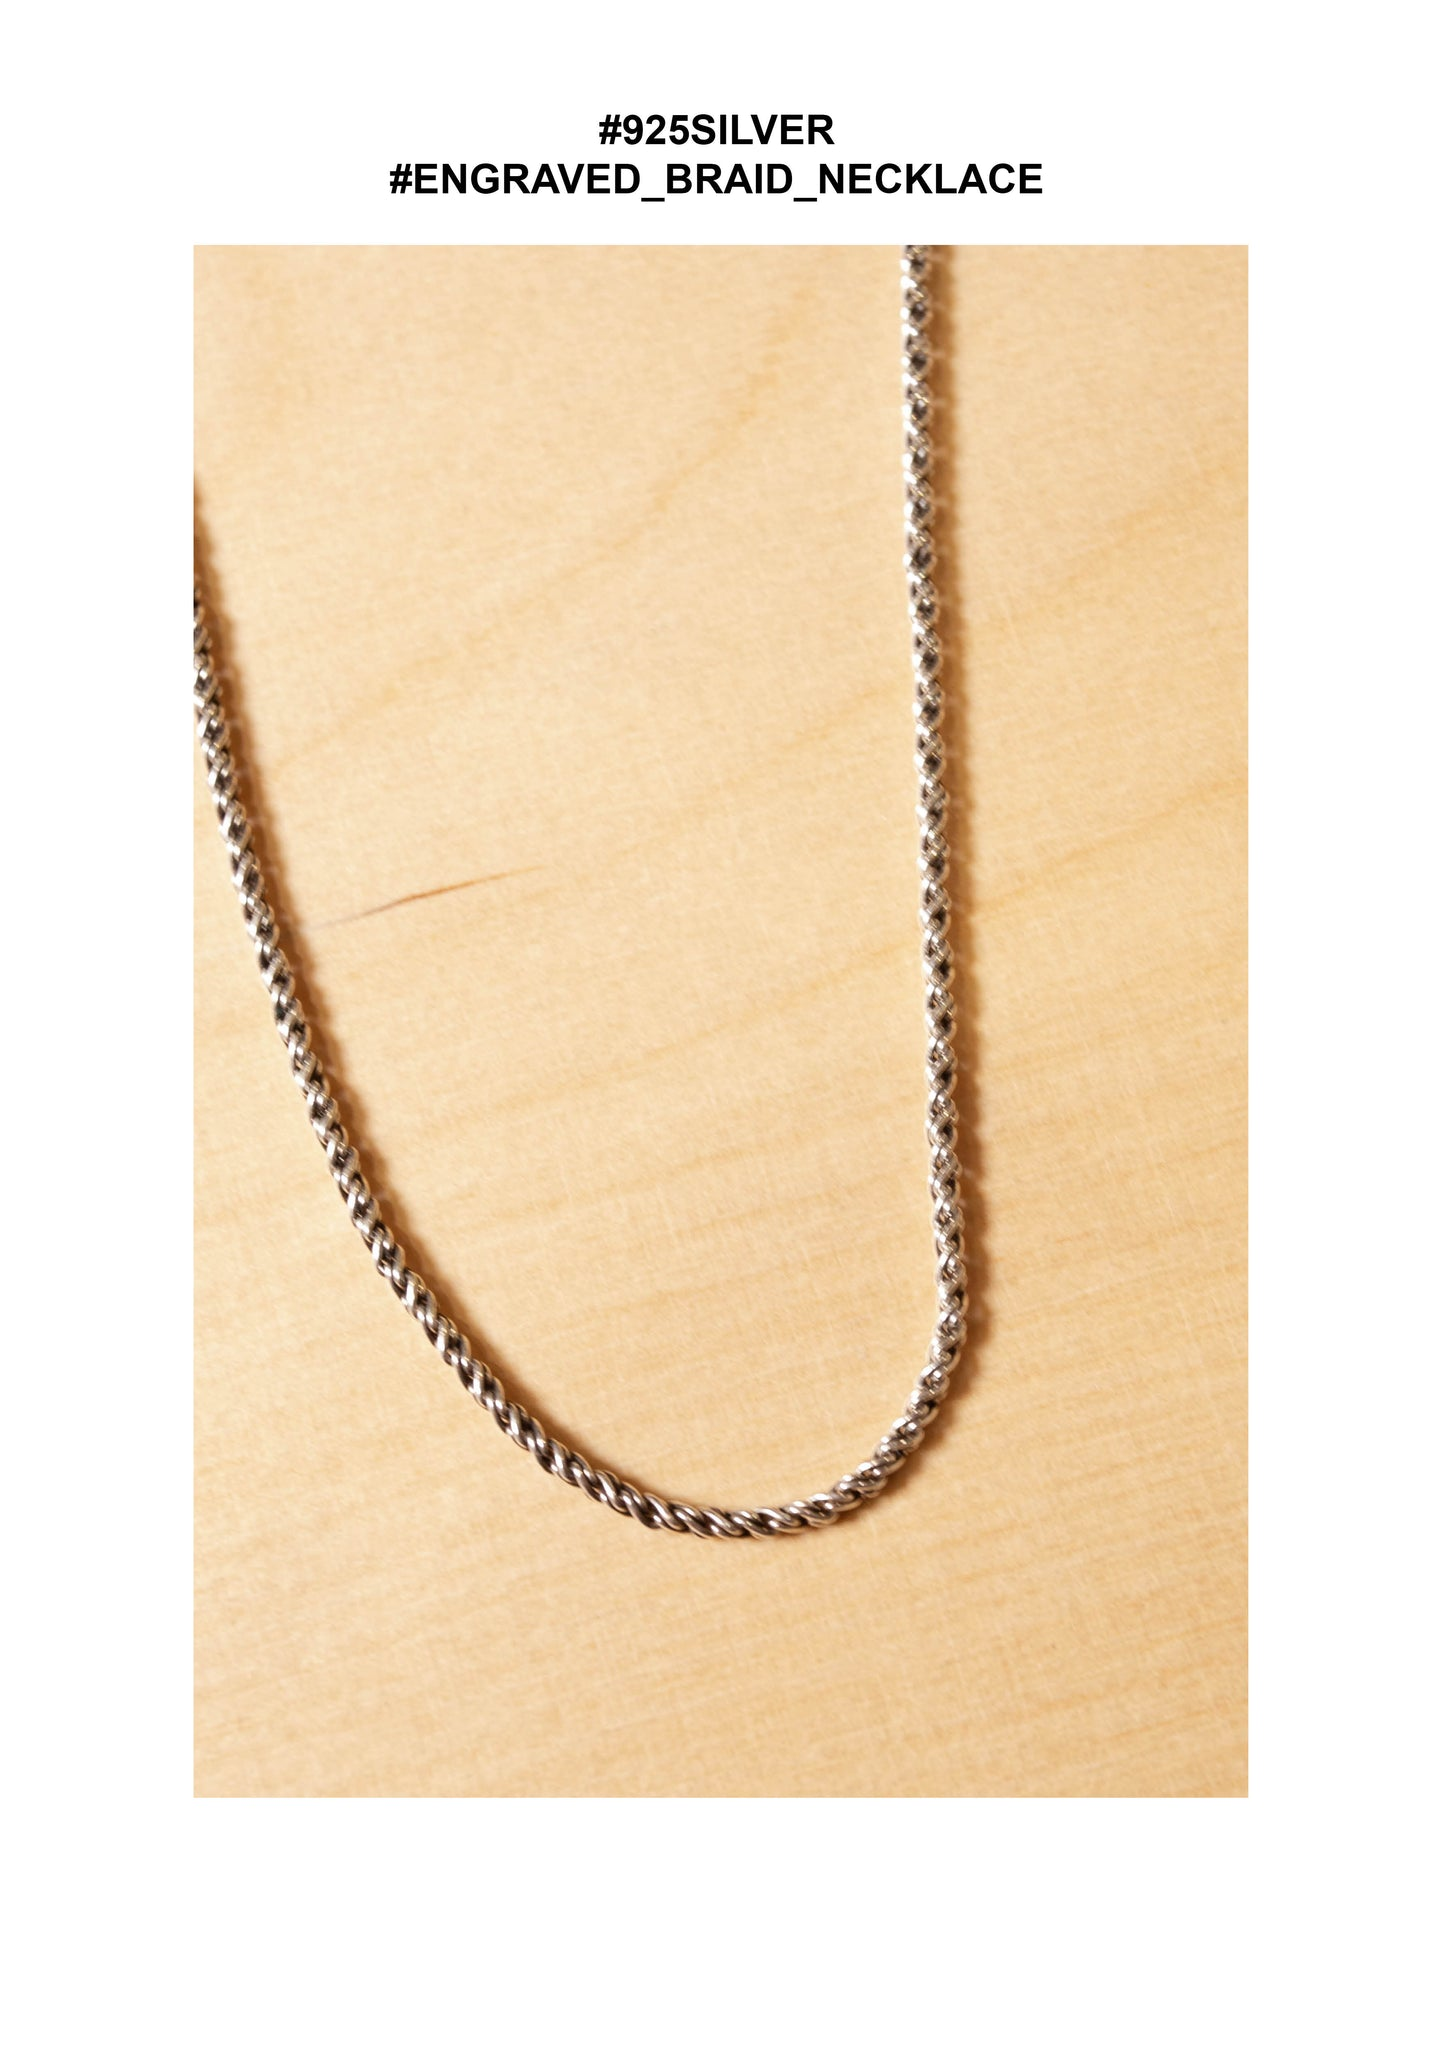 925 Silver Engraved Braid Necklace - whoami